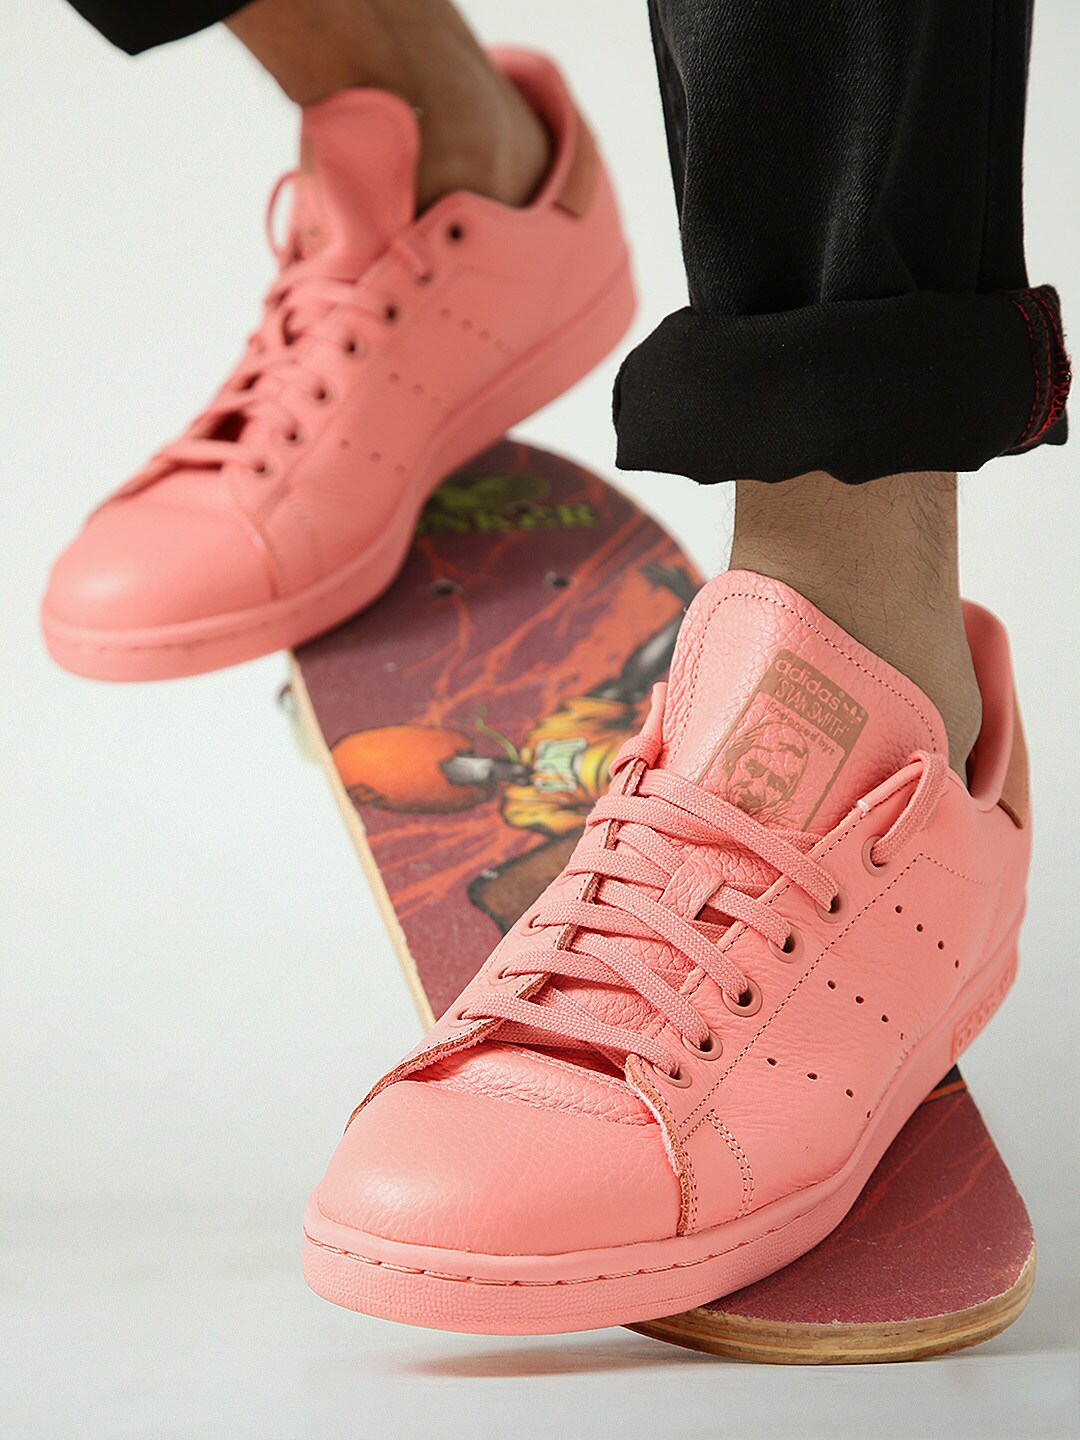 Adidas Stan Smith Sneakers - Buy Stan Smith Shoes and Sneakers Online in  India - Myntra 11c07a09c7c9